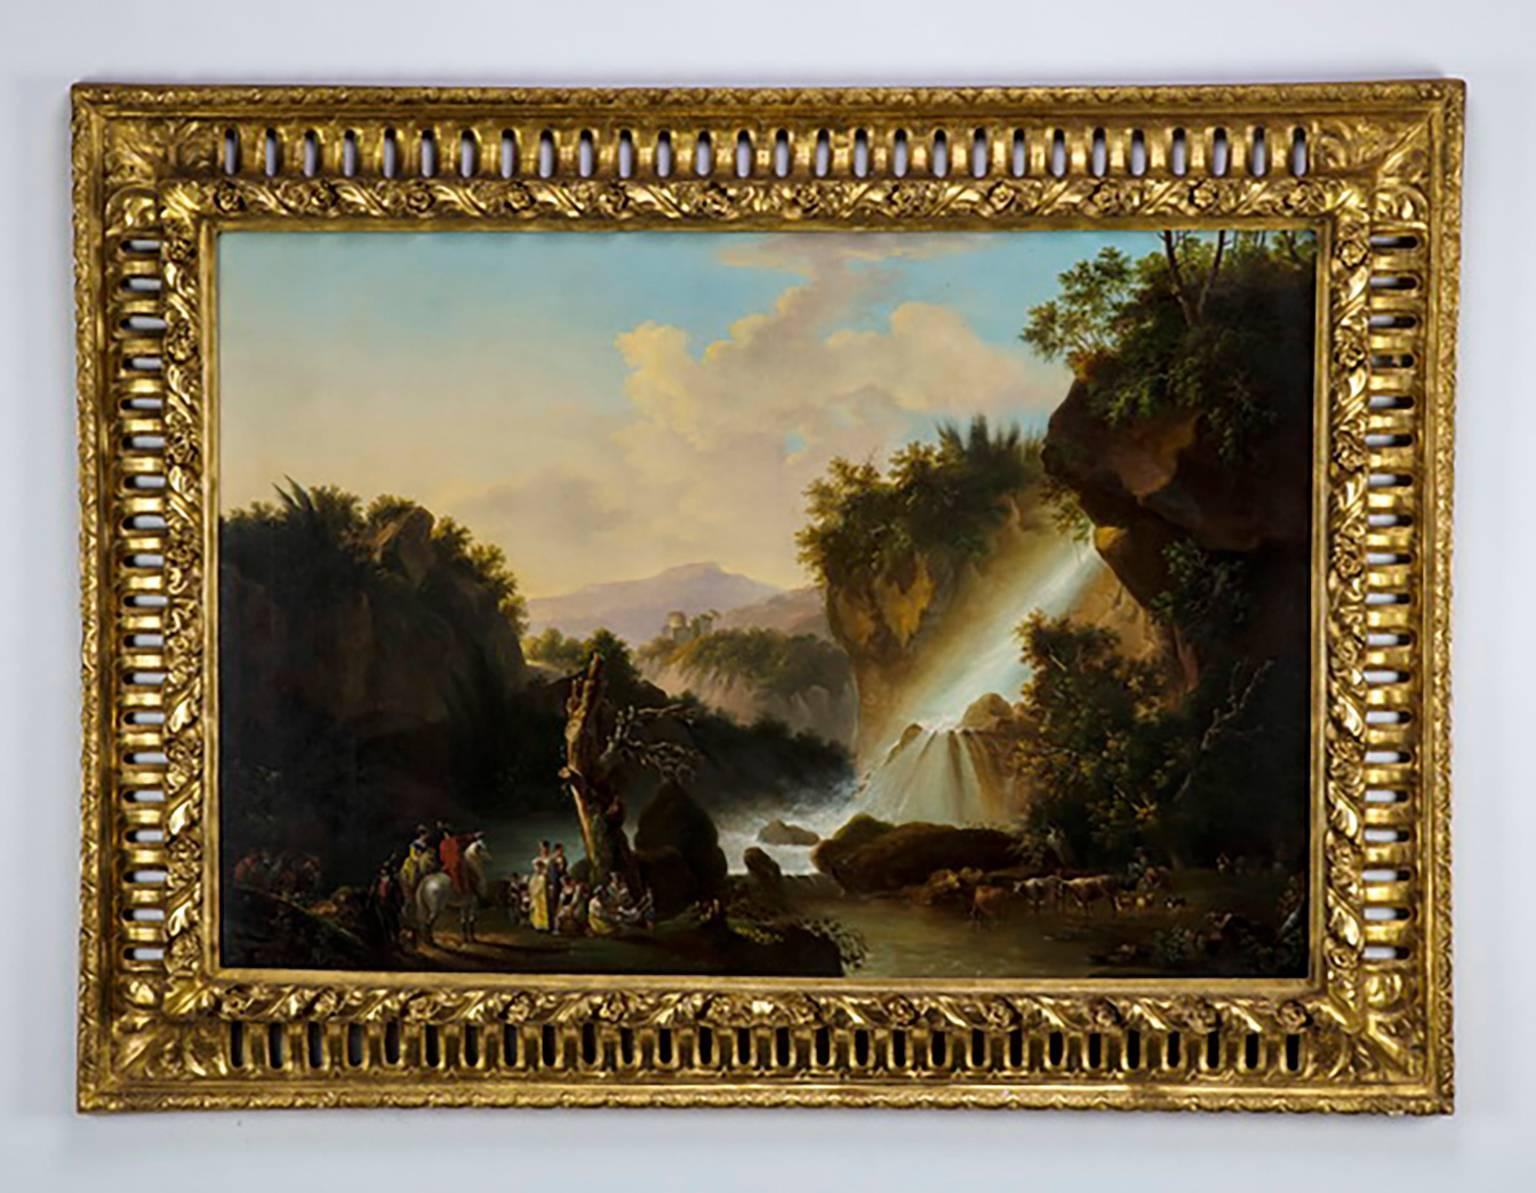 Large Florentine Renaissance Stye Oil Painting in the Manner of James de Louther